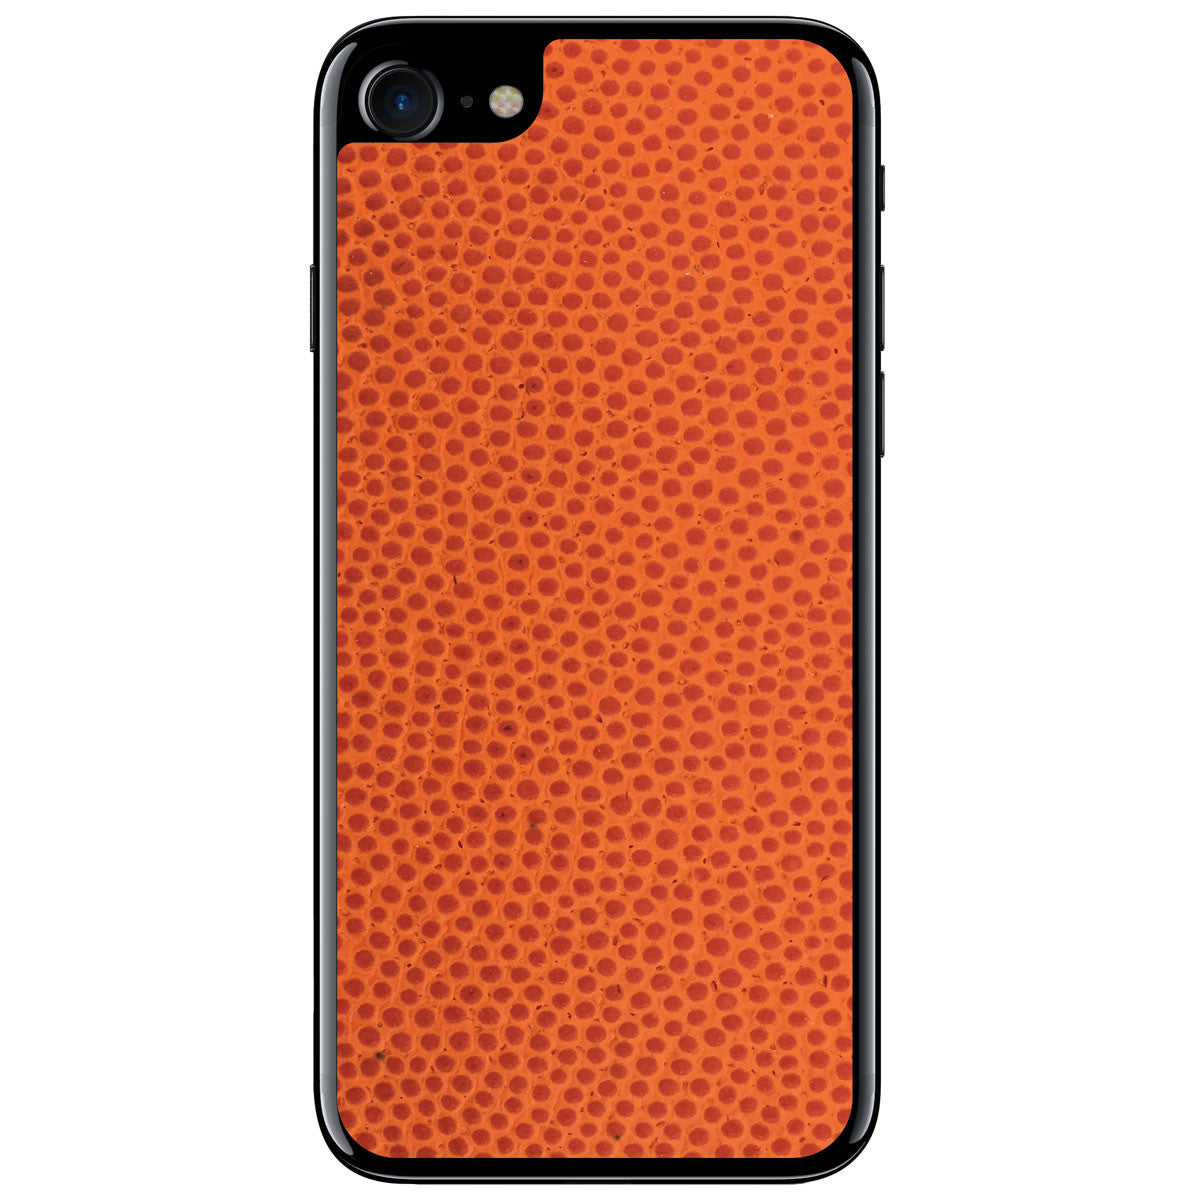 Horween Basketball iPhone 7 Leather Skin